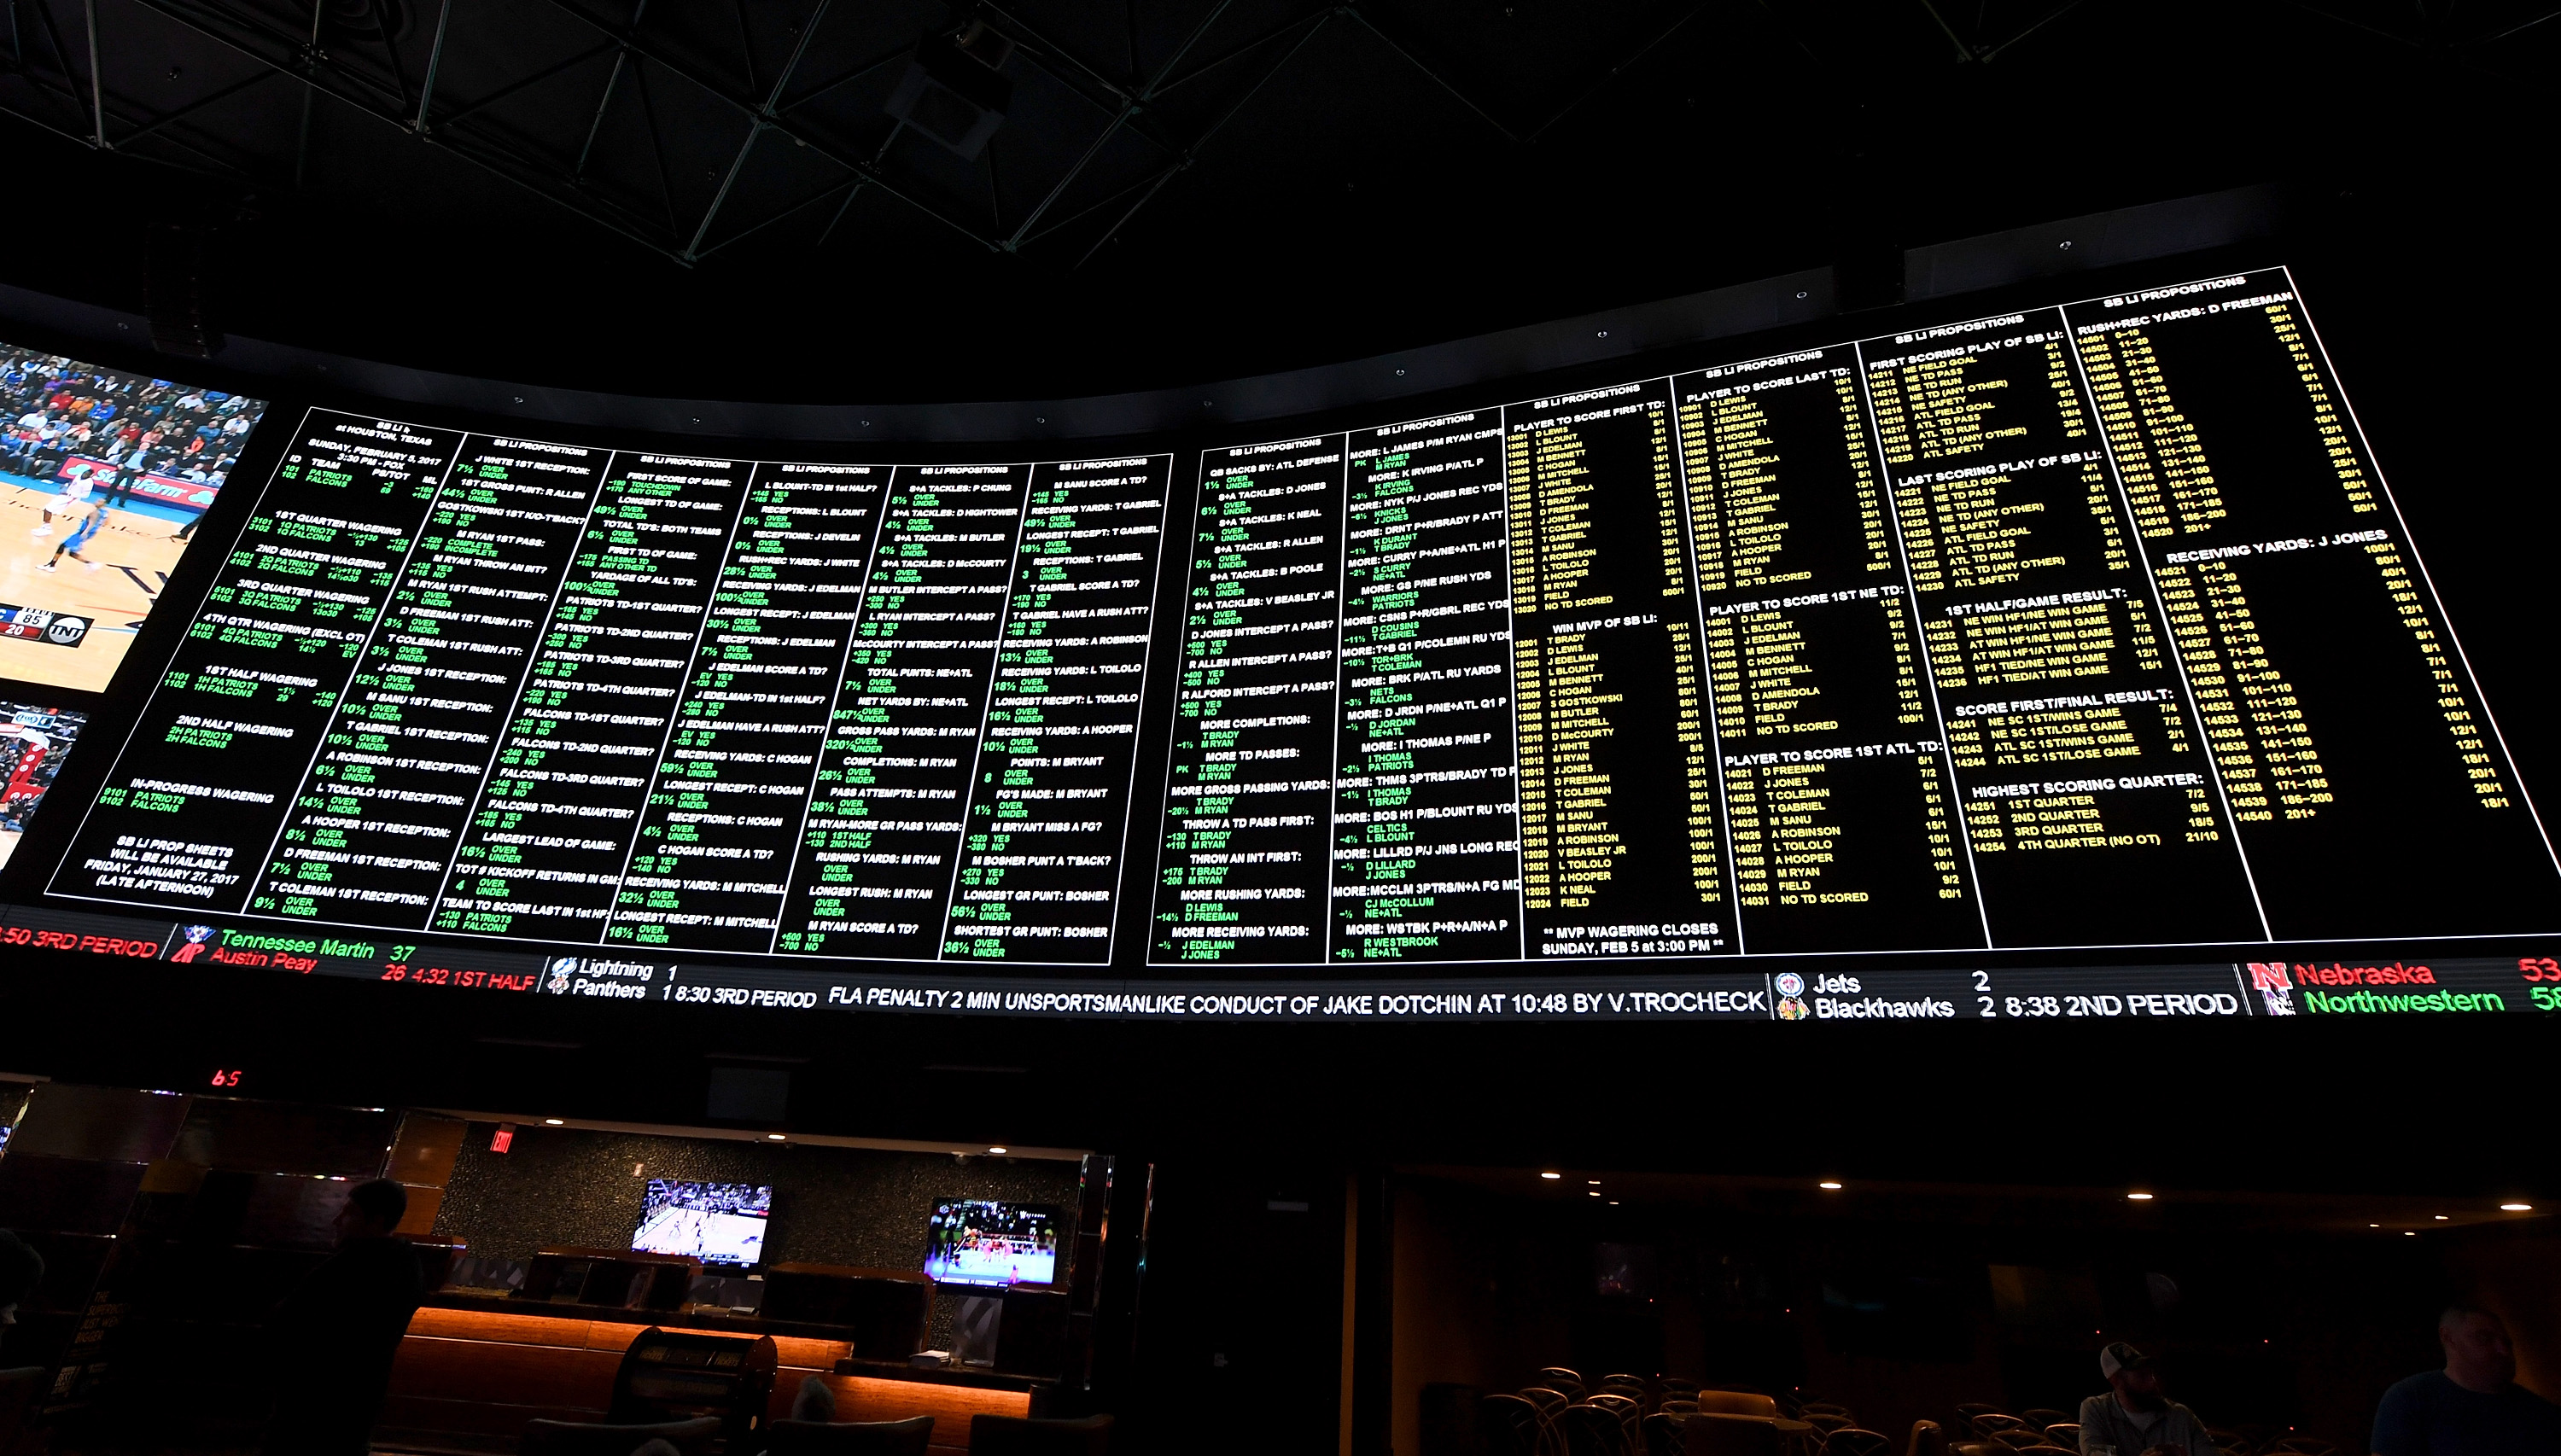 The betting line and some of the more than 400 proposition bets for Super Bowl LI between the Atlanta Falcons and the New England Patriots are displayed at the Race & Sports SuperBook at the Westgate Las Vegas Resort & Casino on January 26, 2017 in Las Vegas, Nevada.